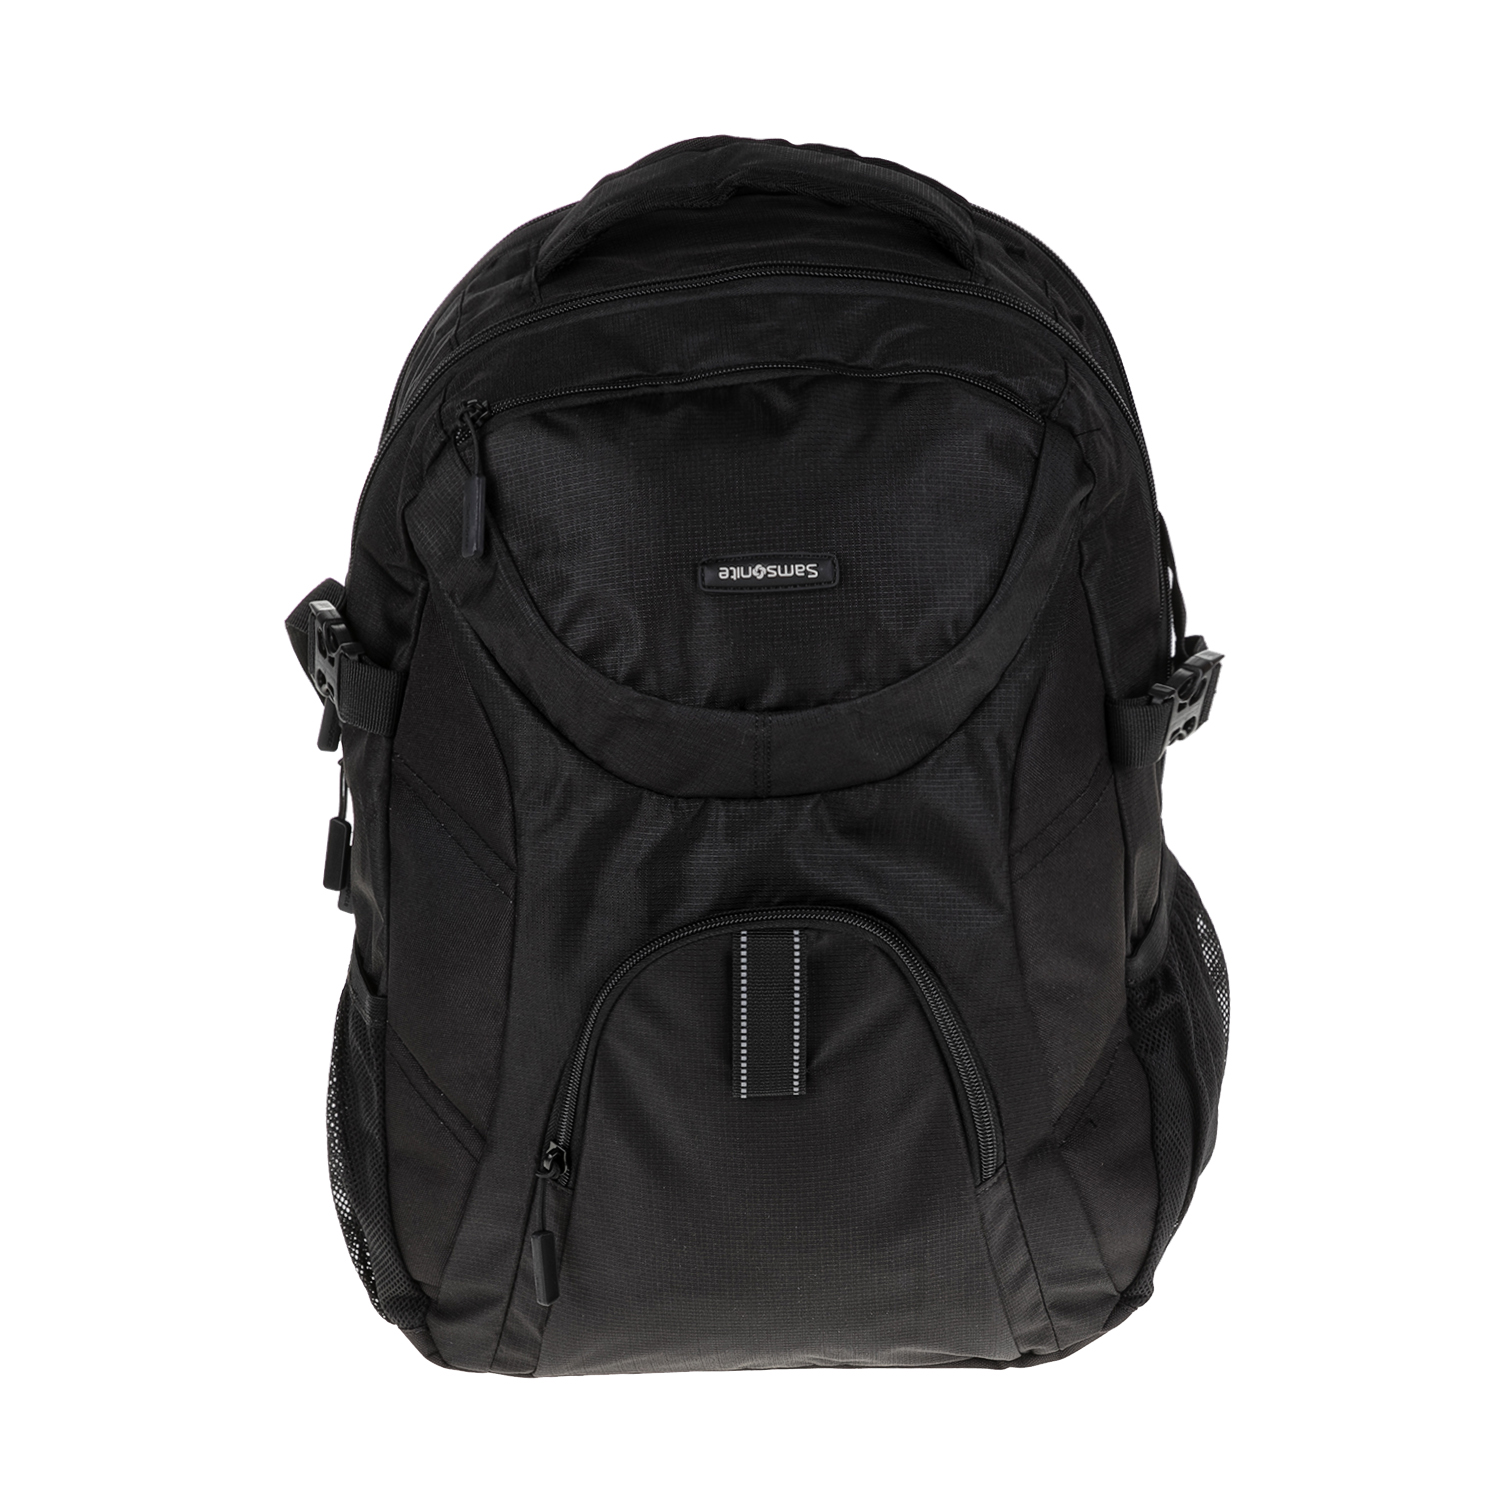 SAMSONITE - Τσάντα πλάτης WANDERPACKS LAPTOP BACKPACK L